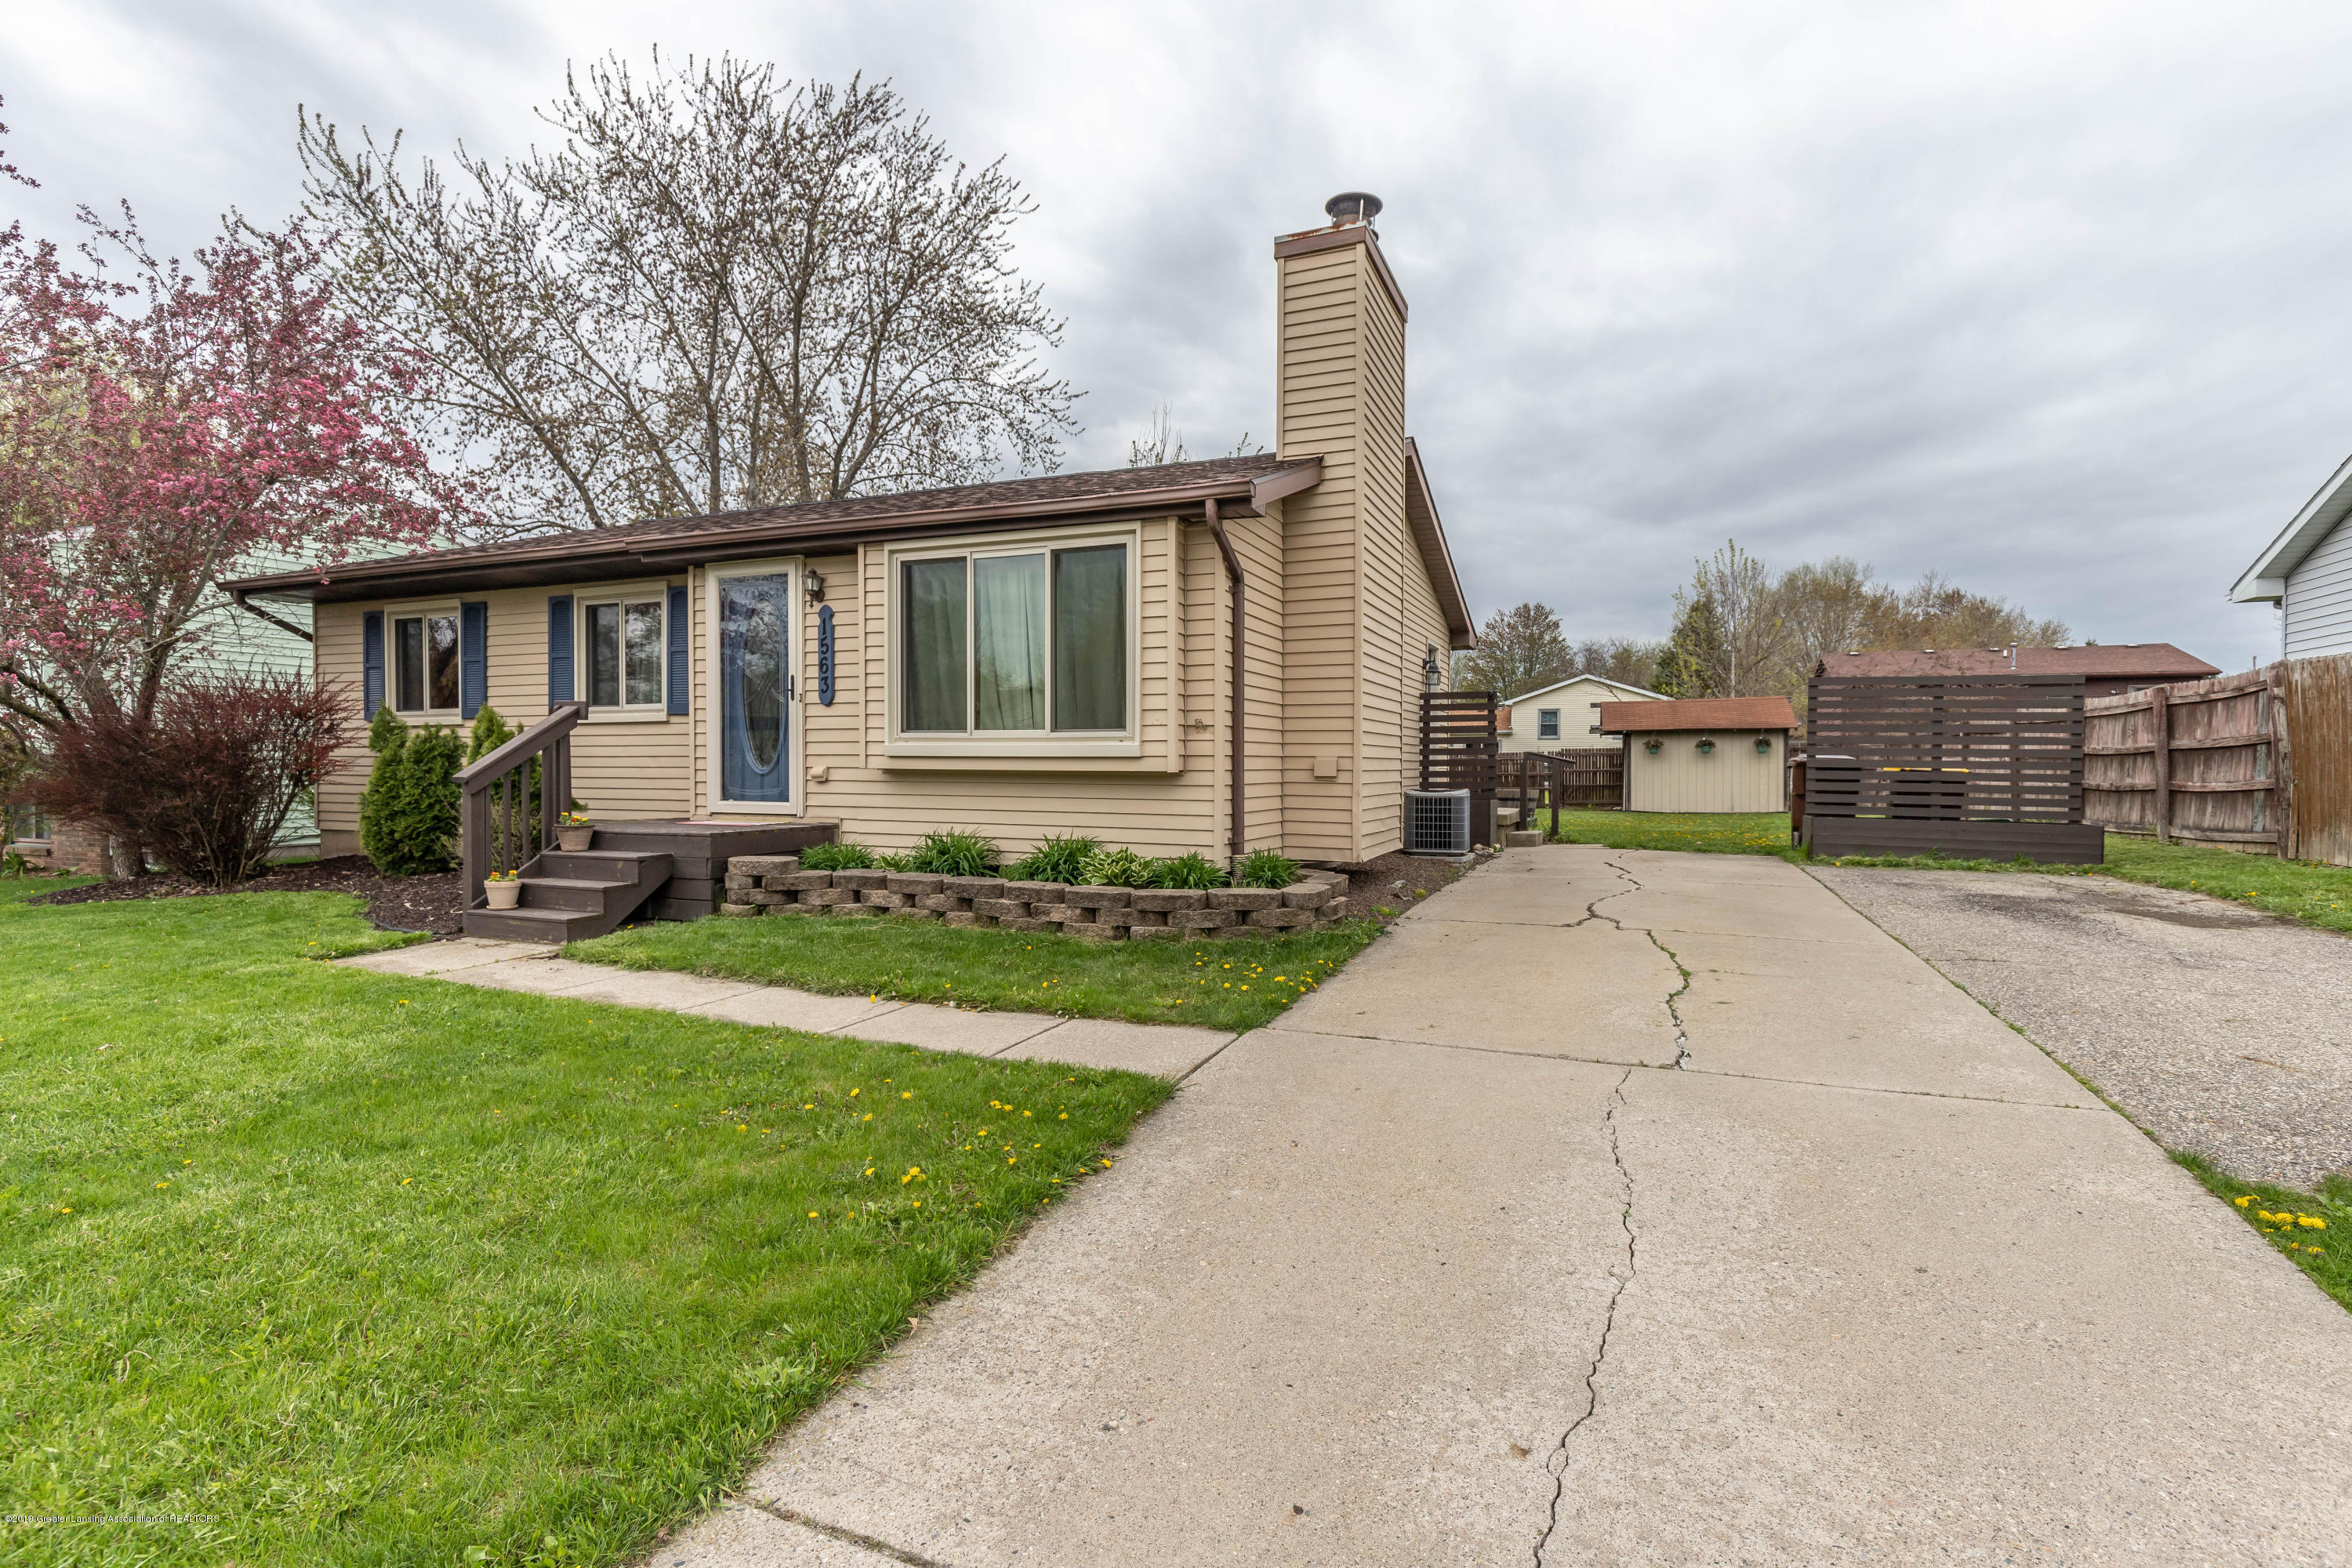 1563 Jacqueline Dr - jacfront2 (1 of 1) - 1